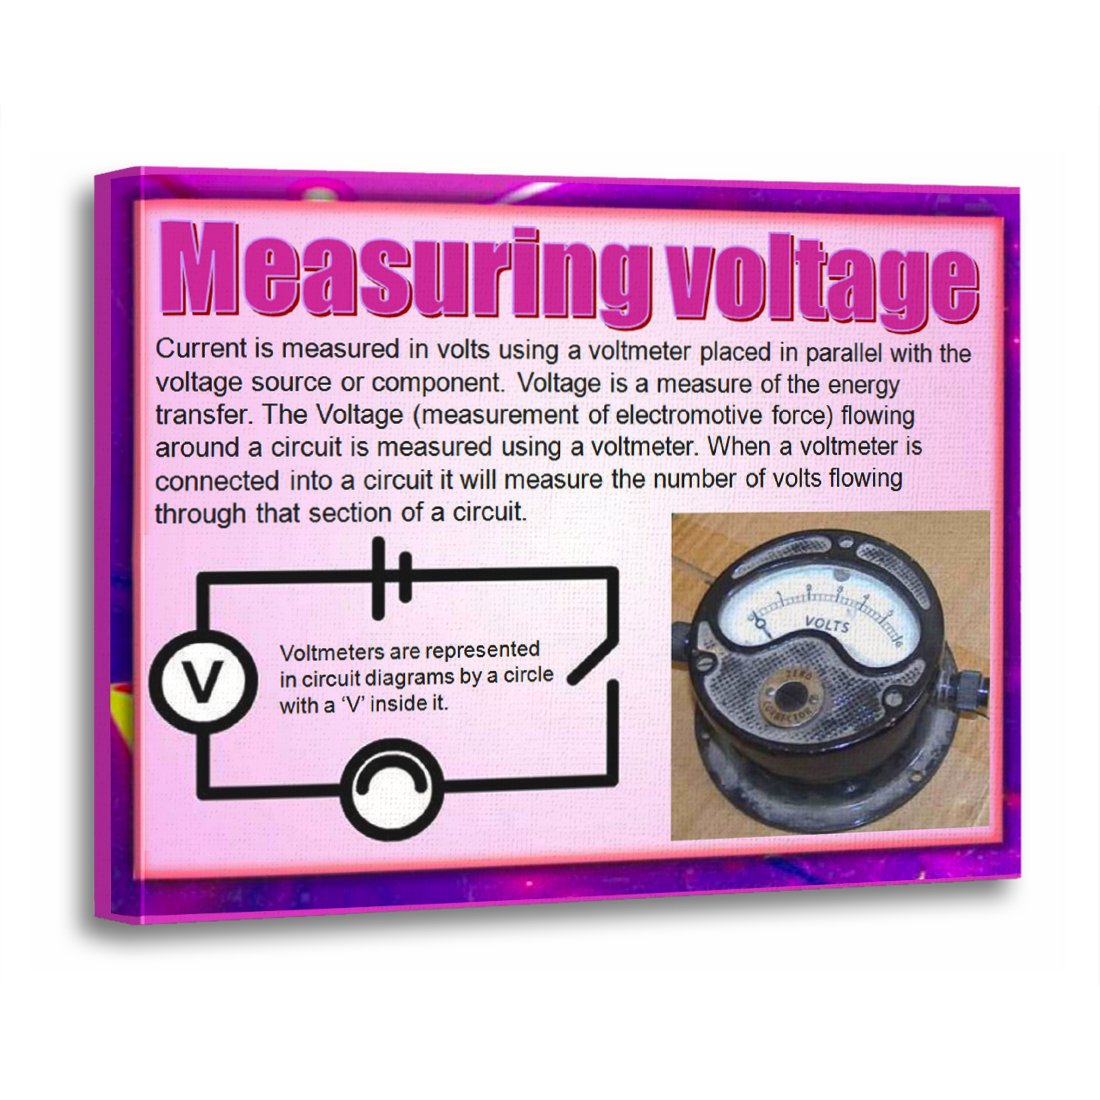 Torass Canvas Wall Art Print Educational Science Across A Component In Circuit Is Measured Using Voltmeter This Electricity Measuring Resources Education Schools Energy Artwork For Home Decor 20 X 30